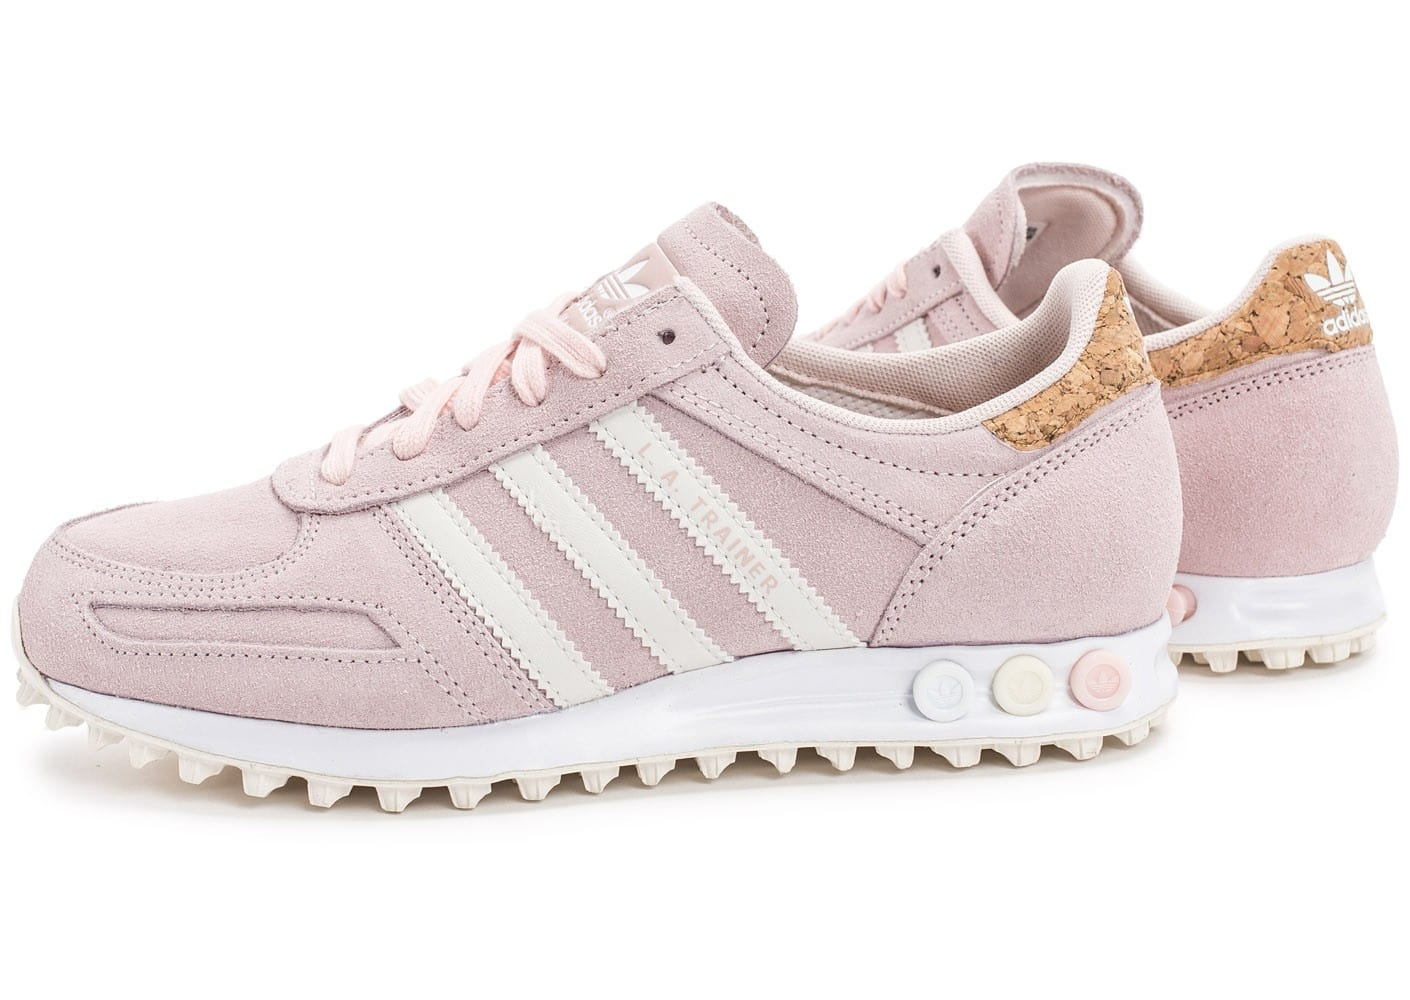 adidas L.A Trainer rose - Chaussures adidas - Chausport